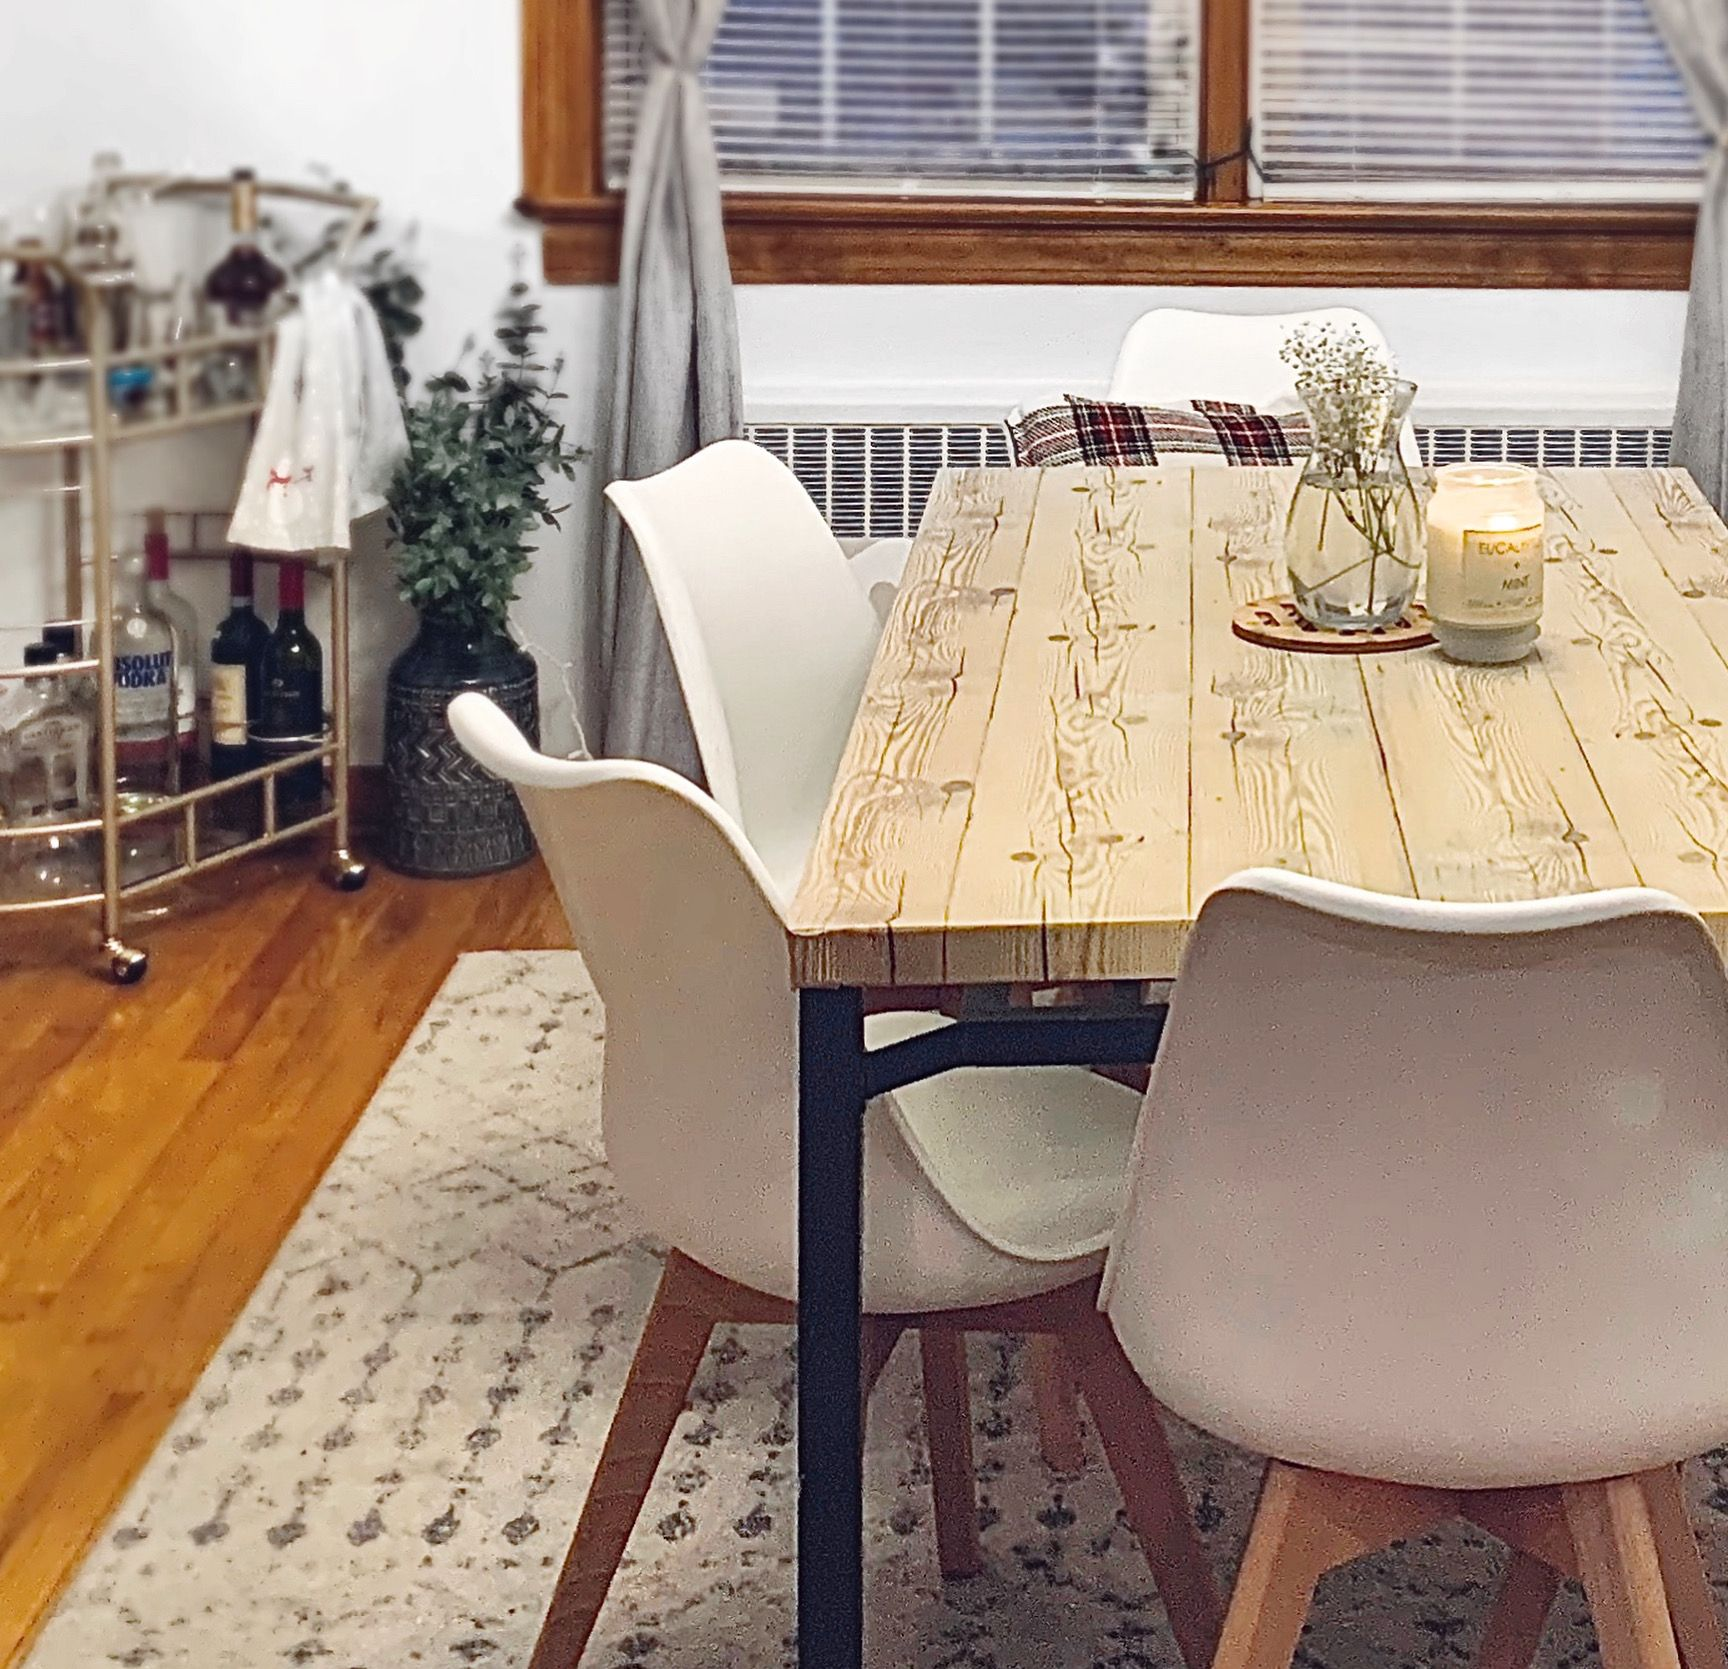 Diy Scandinavian Dining Table For 15 Before And After Youtube In 2020 Scandinavian Dining Table Ikea Dining Table Ikea Dining